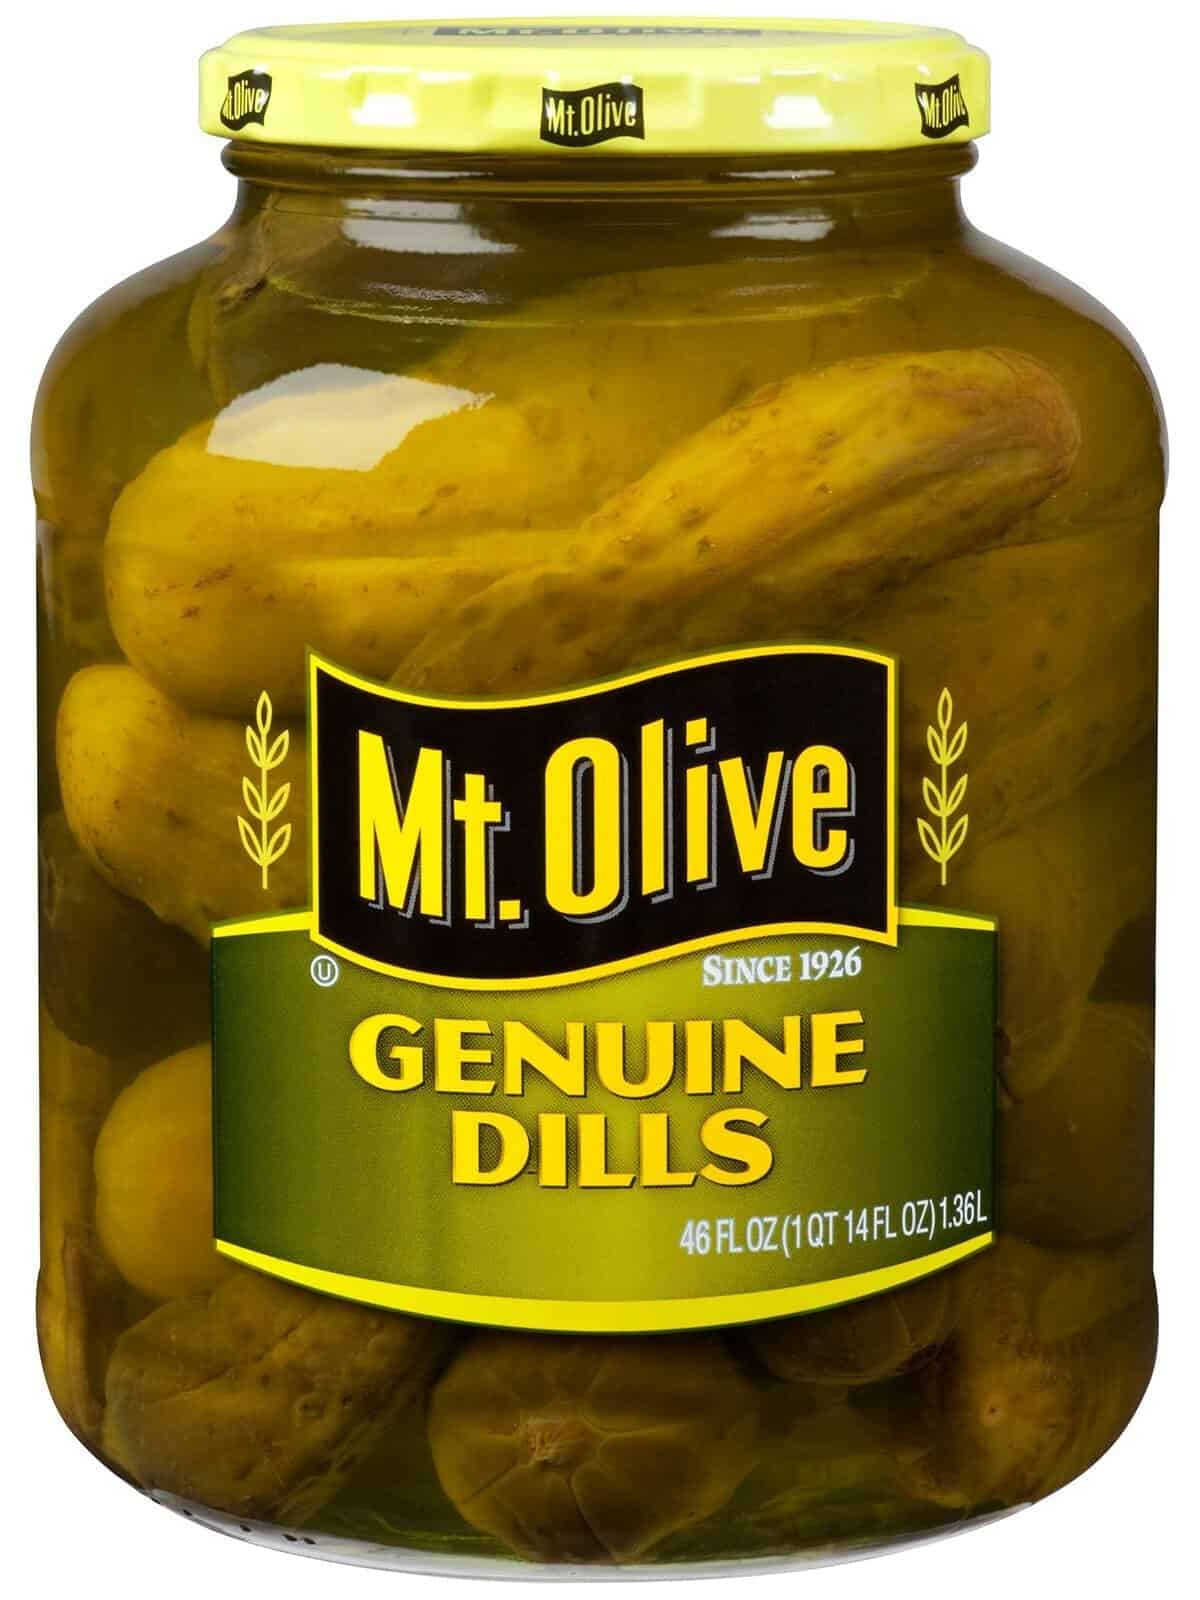 Genuine Dills Jar